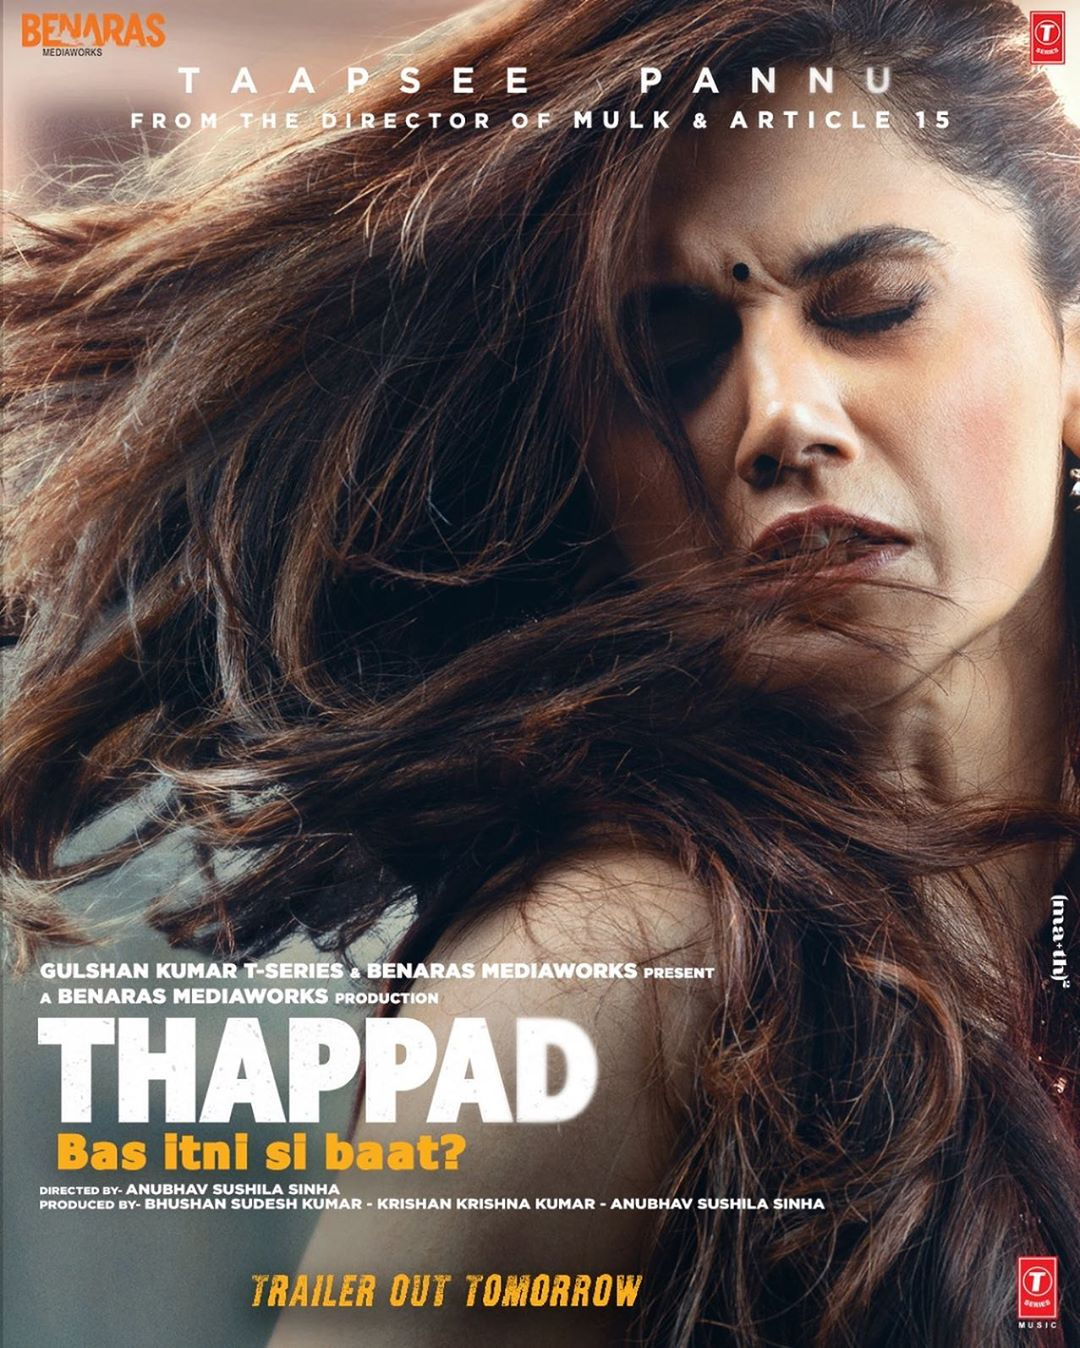 First poster of Thappad, featuring Taapsee Pannu